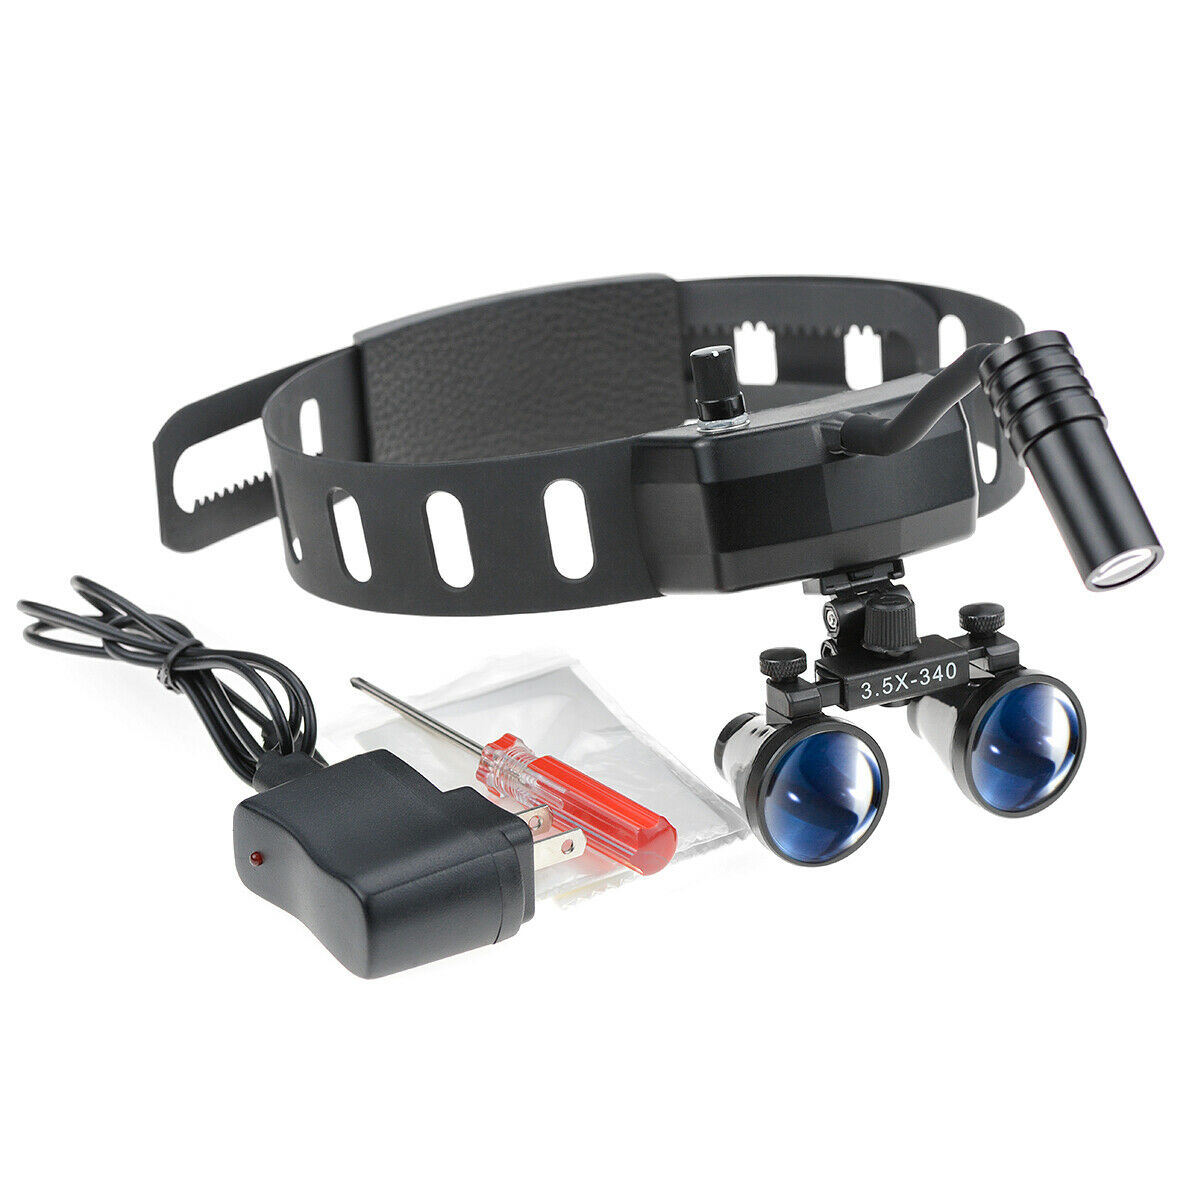 5W Wireless LED Head Light with 3.5X Binocular Loupes for Dental Medical